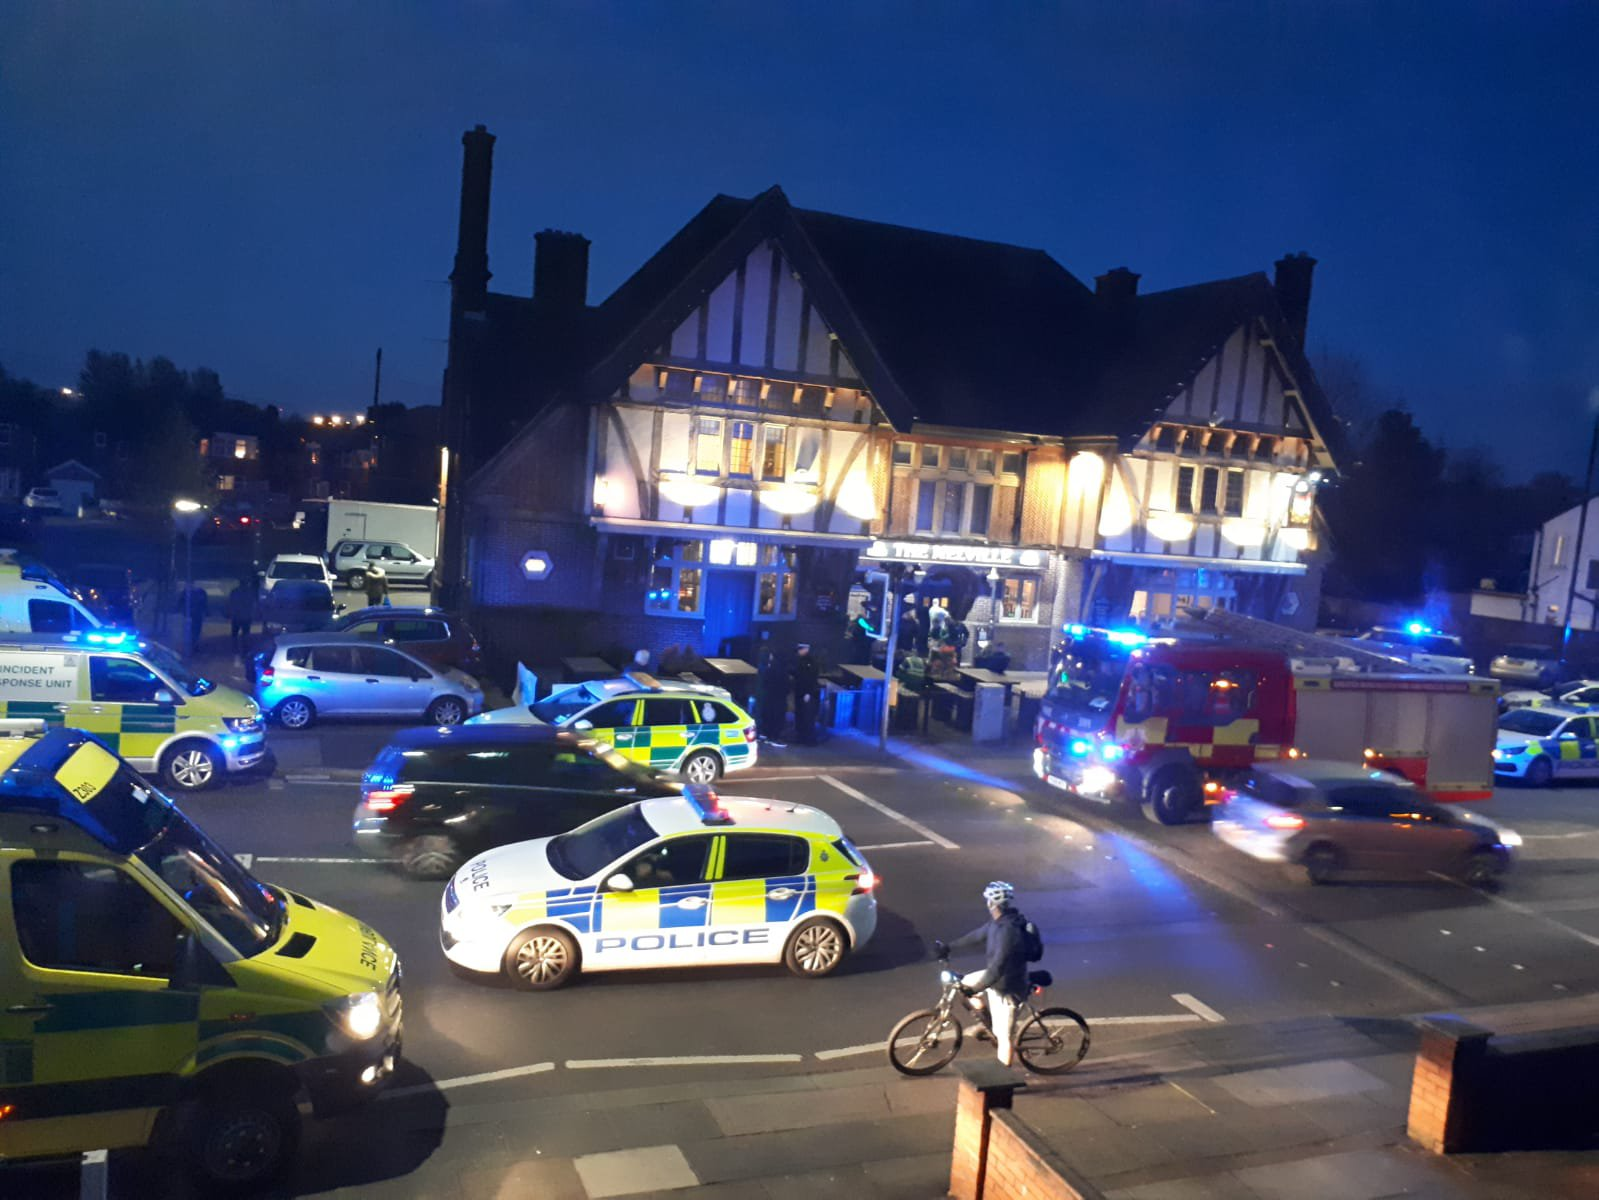 A man is fighting for life after a violent melee in a pub - as three arrested men have been released under investigation by police. Cops were called to reports of a disturbance at The Melville in Stretford, Greater Manchester, on Friday night [April 12]. Caption: Emergency services outside The Melville pub in Stretford, Greater Manchester, where a man was critically injured in a disturbance on April 12, 2019